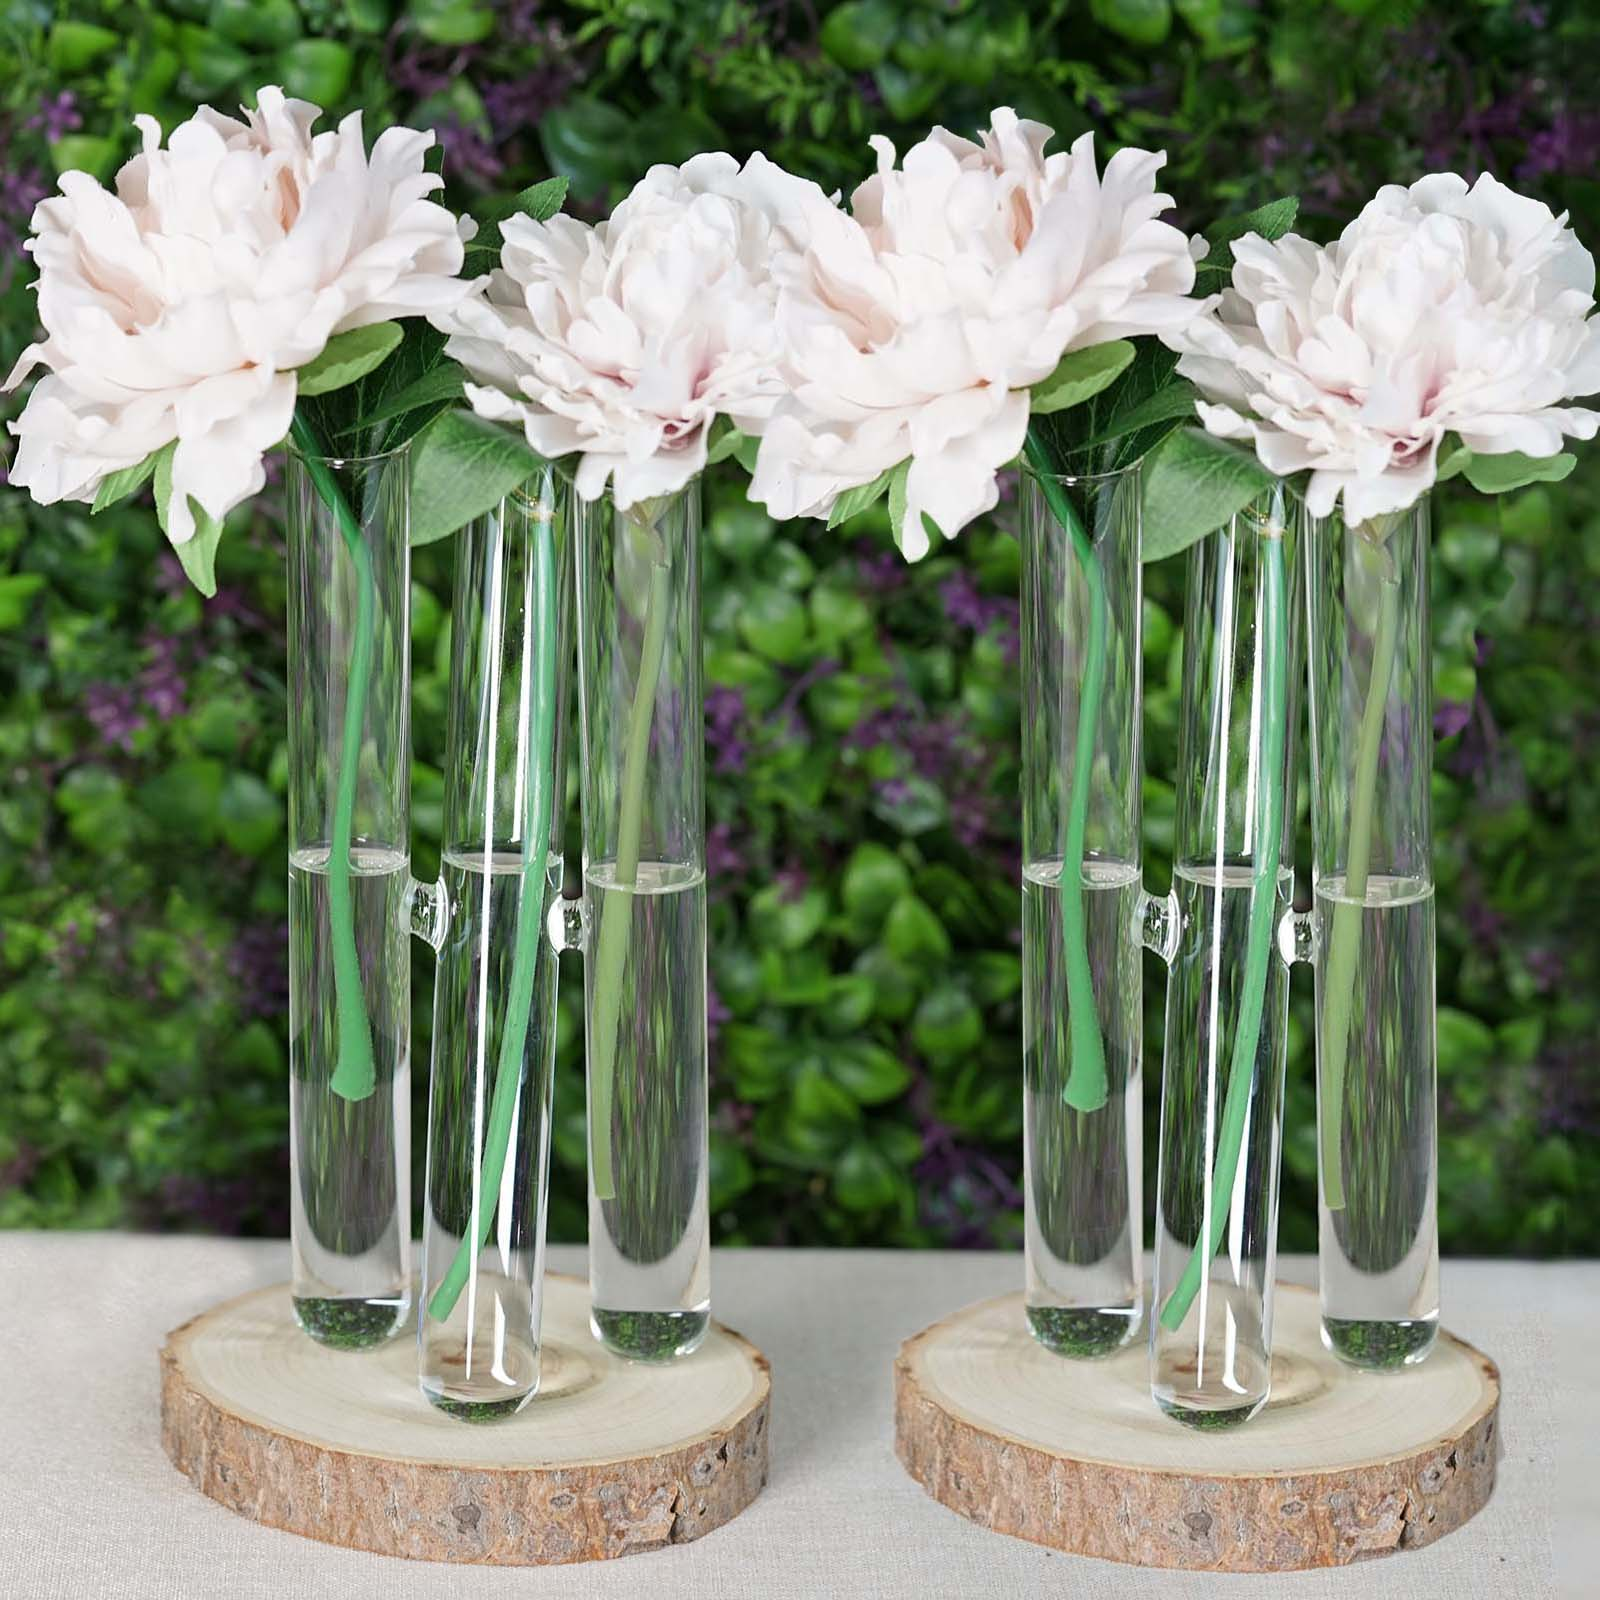 Set Of 2 3 Pcs Clear Glass Conjoined Test Tube Flower Vase Plant Decoration Tableclothsfactory